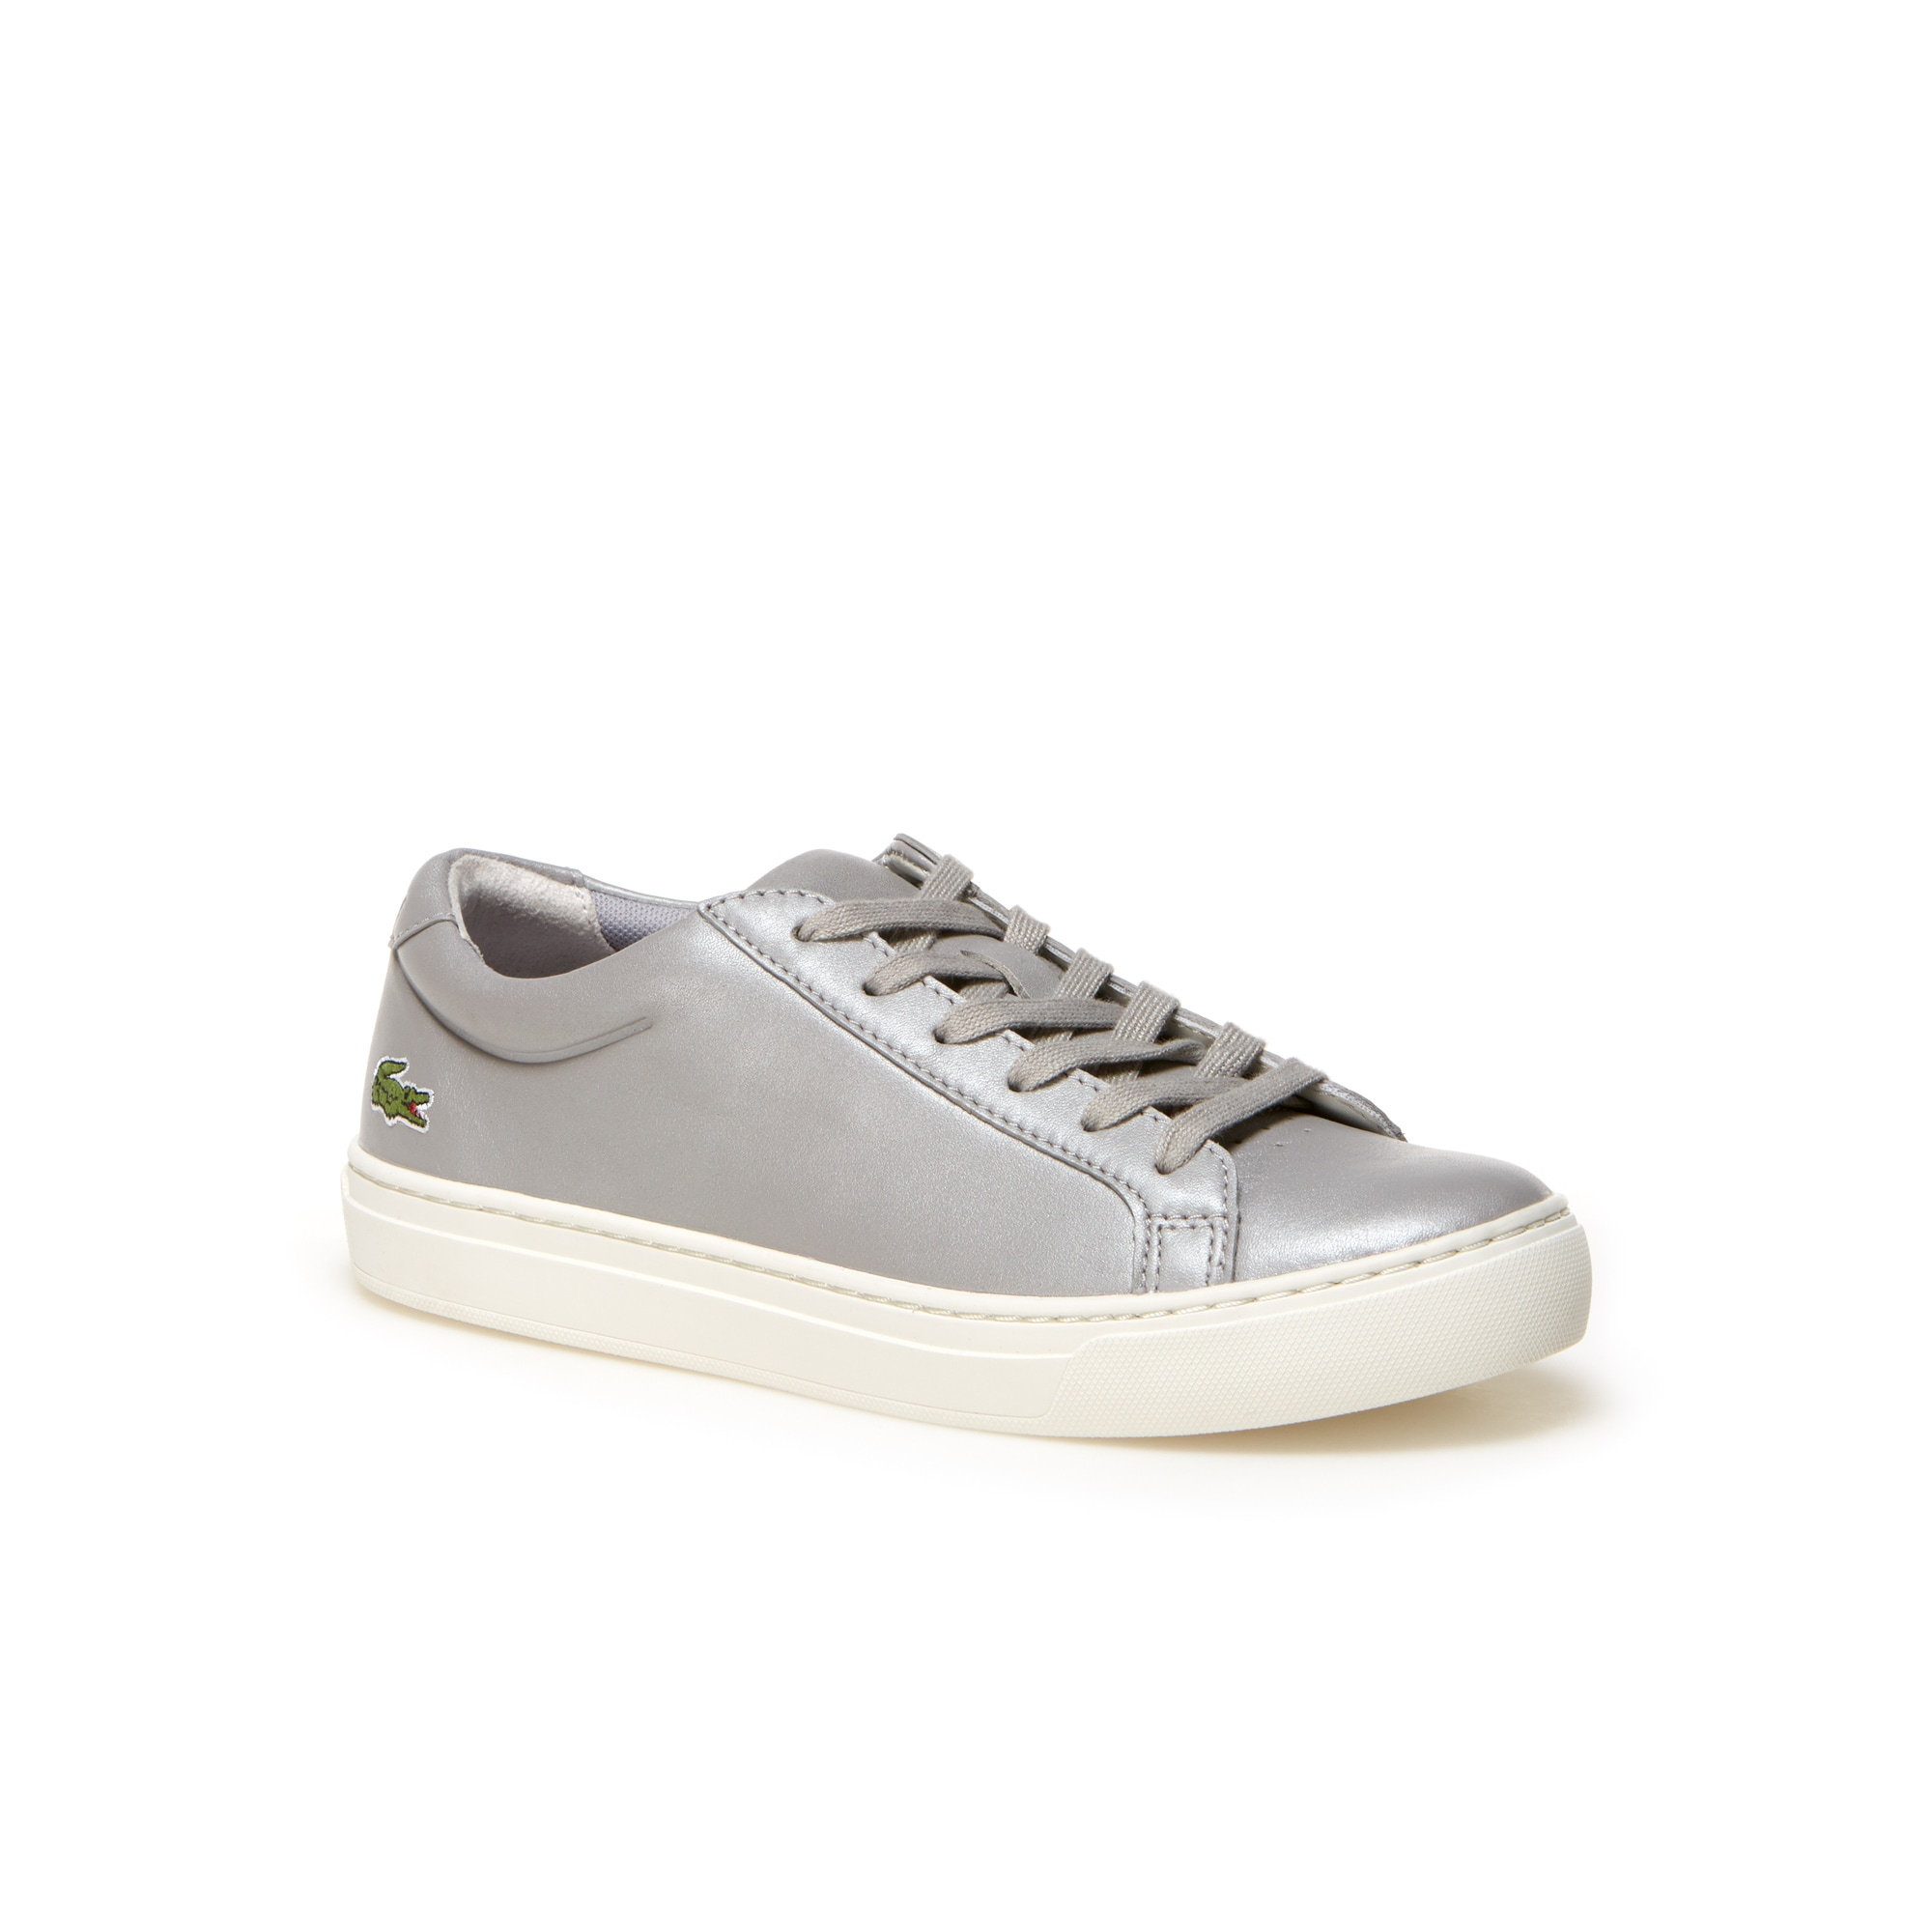 Women'S L.12.12 Leather Sneakers in Grey from Lacoste